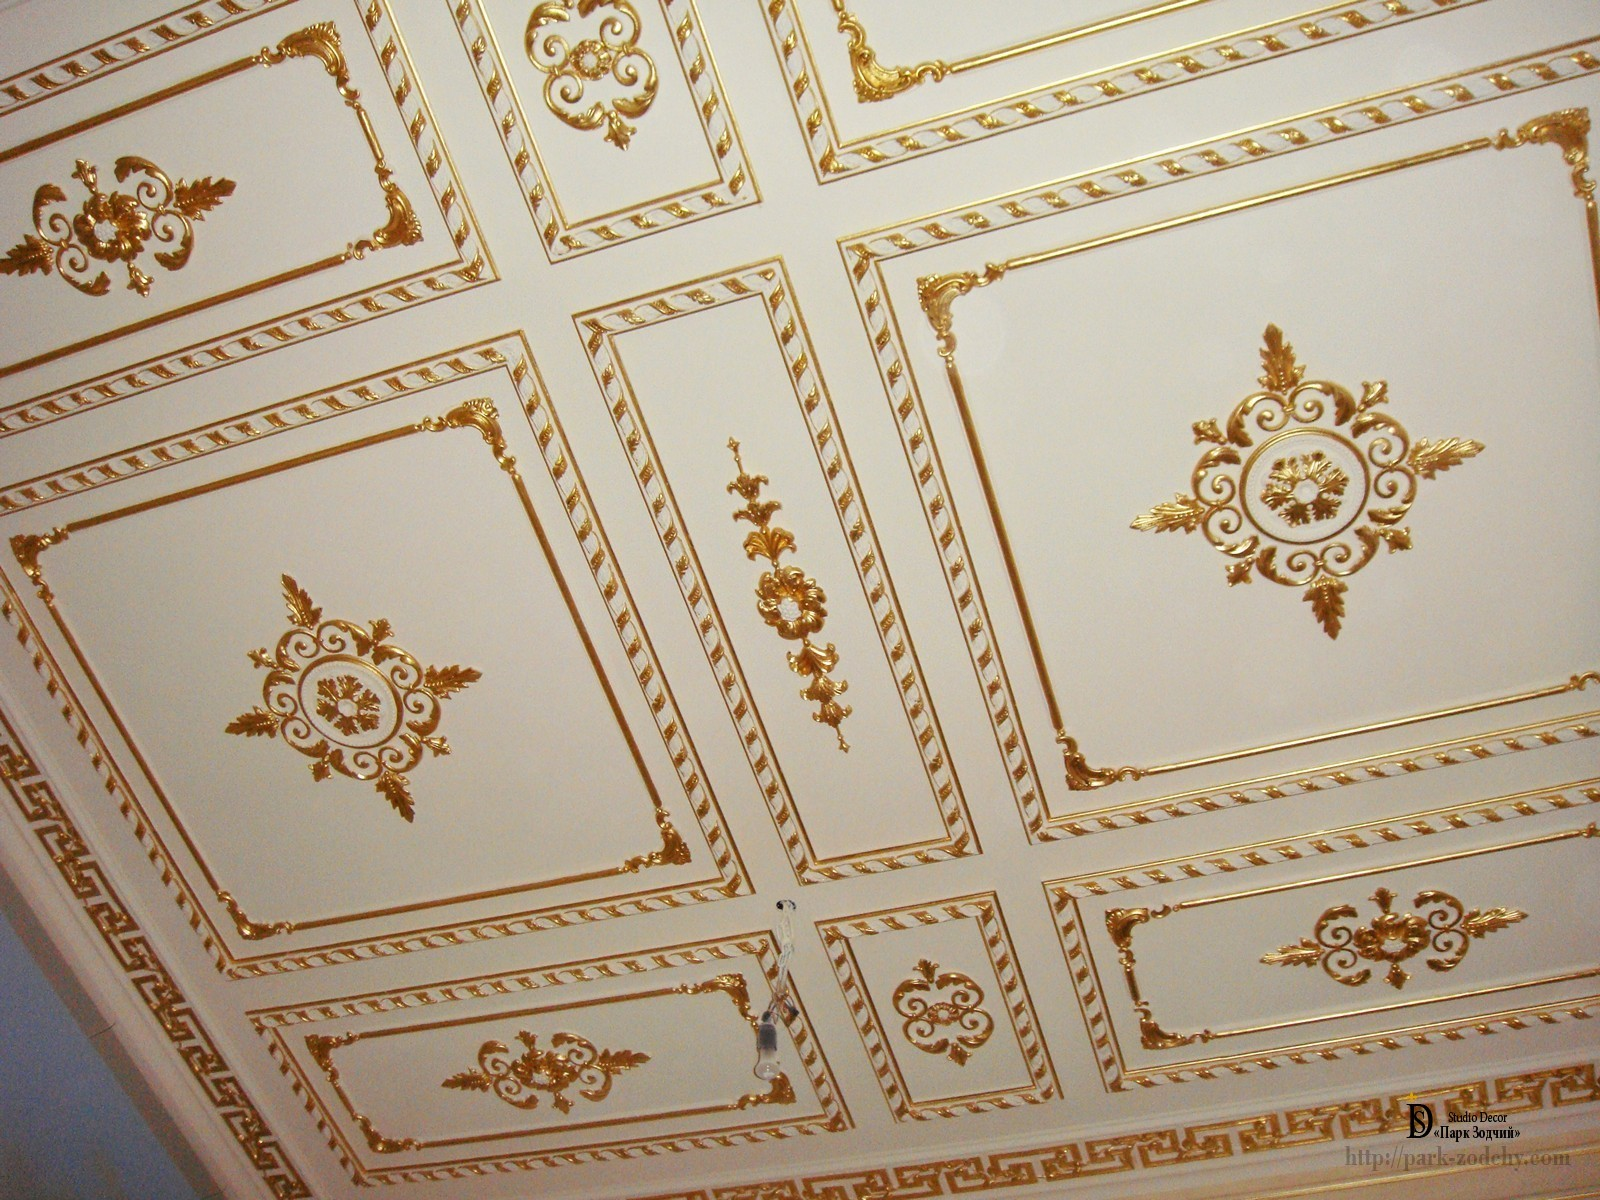 The gilding of the stucco with a low profile pattern